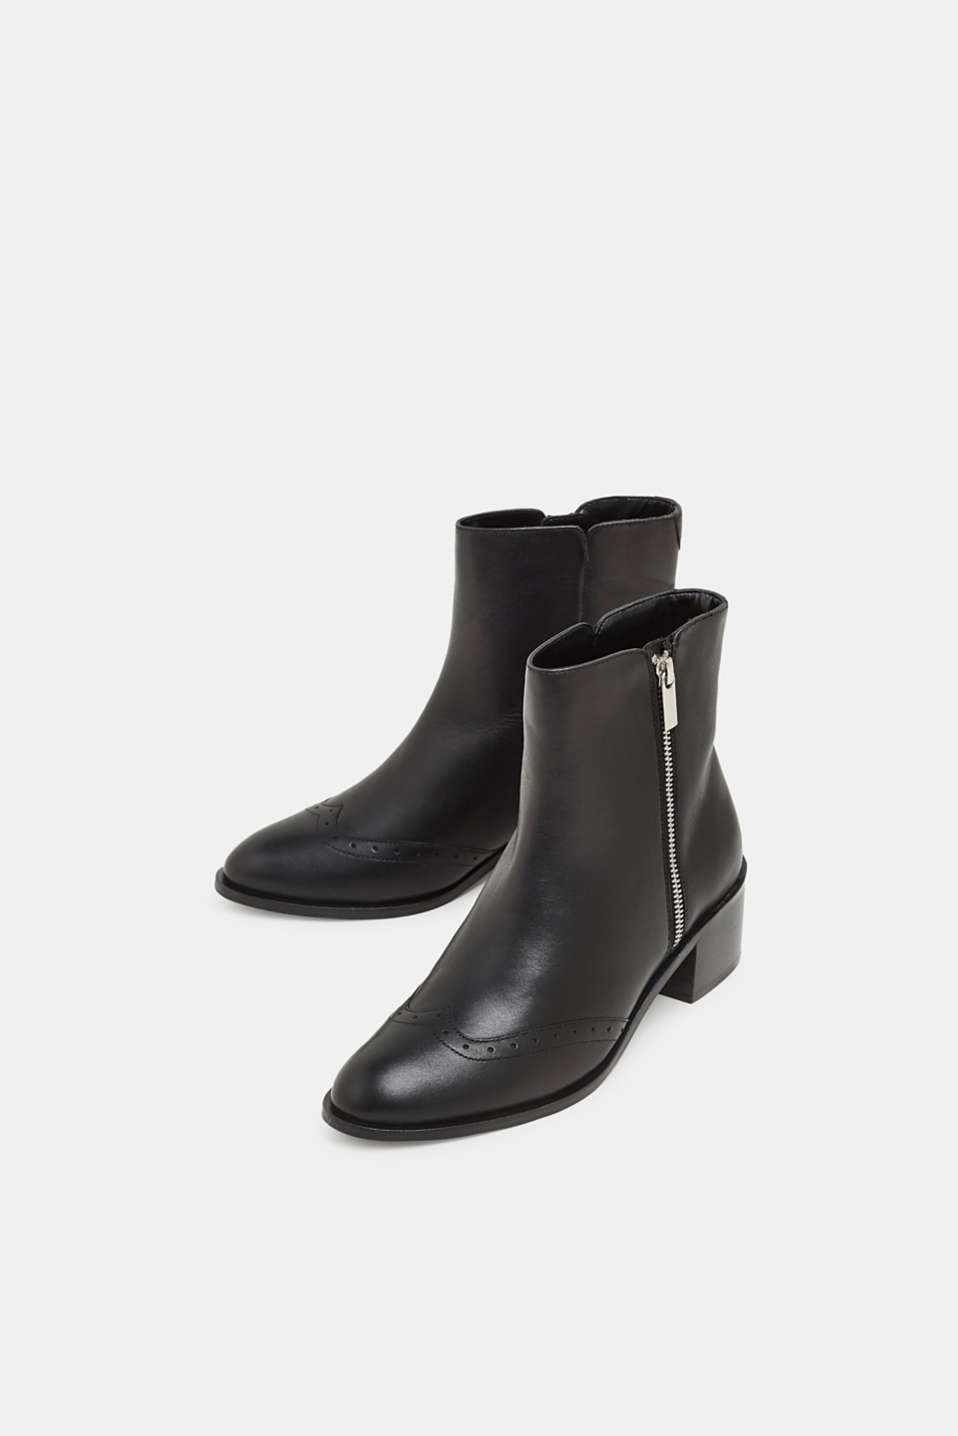 Boots with a brogue pattern, made of leather, BLACK, detail image number 5